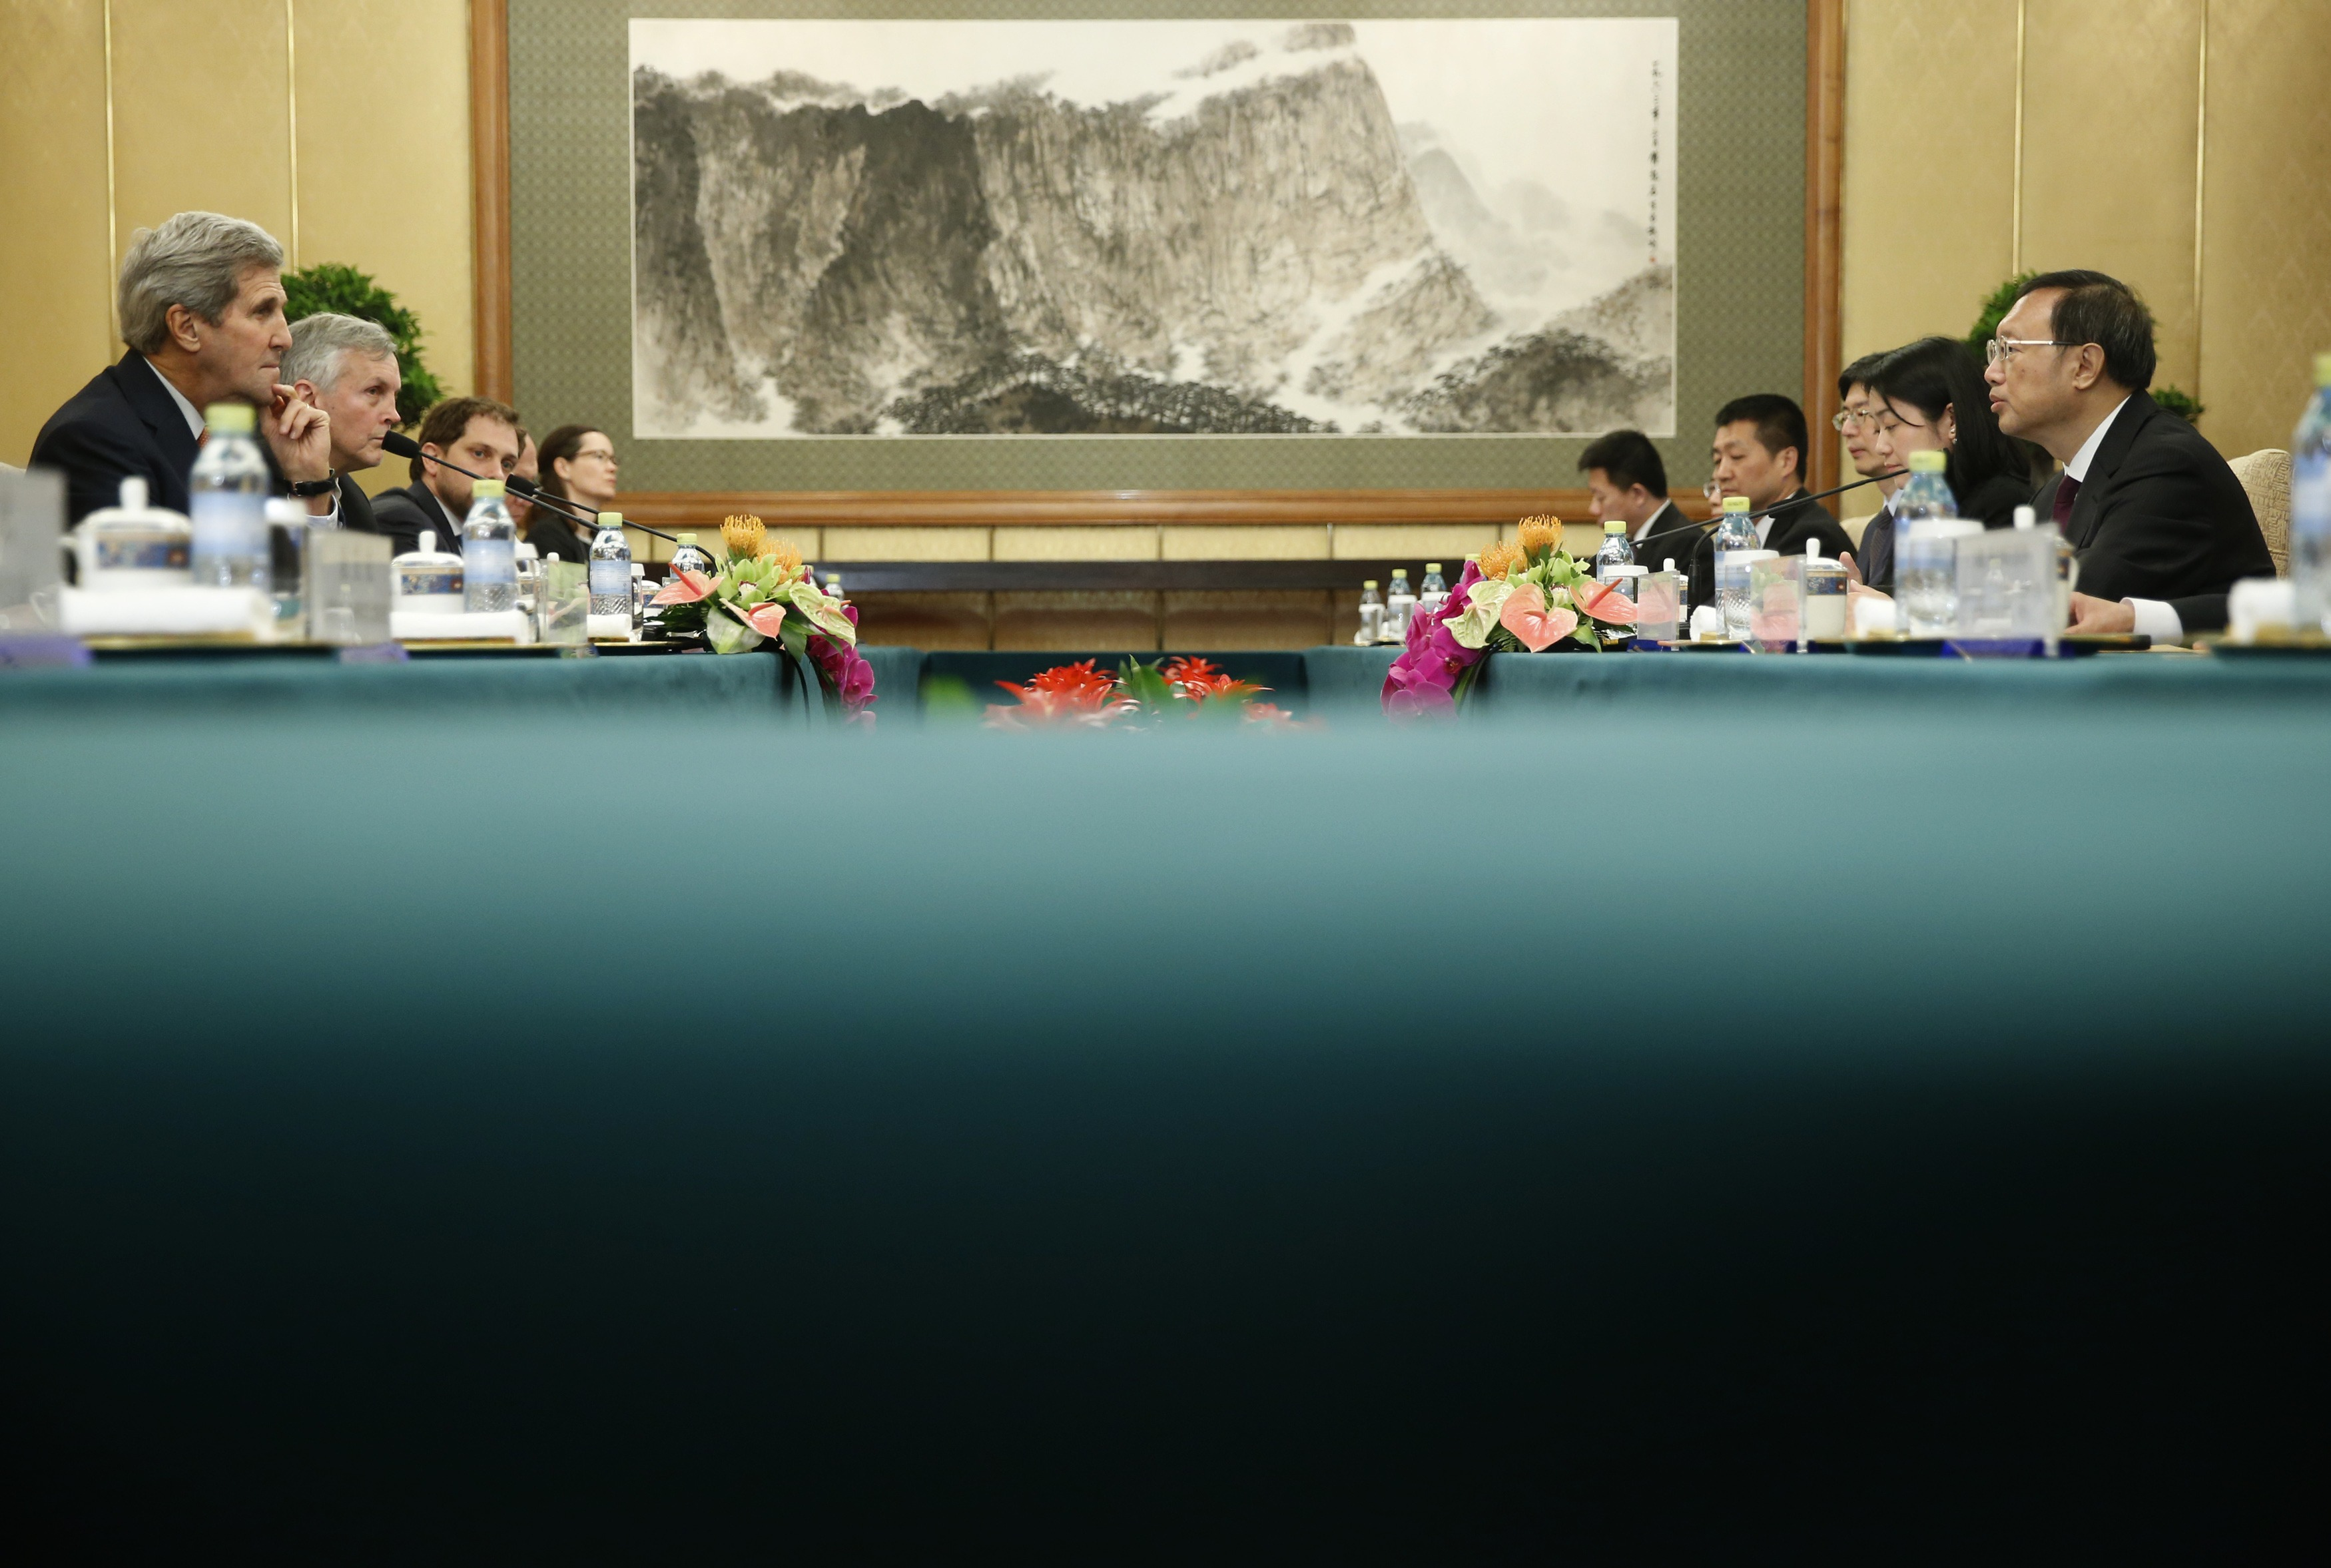 U.S. Secretary of State John Kerry (L) speaks with China's State Councilor Yang Jiechi at the Diaoyutai State Guest House on May 16, 2015 in Beijing, China. U.S. Secretary of State John Kerry is urging China to halt increasingly assertive actions it is taking in the South China Sea. Photo by Kim Kyung-Hoon - Pool/Getty Images.